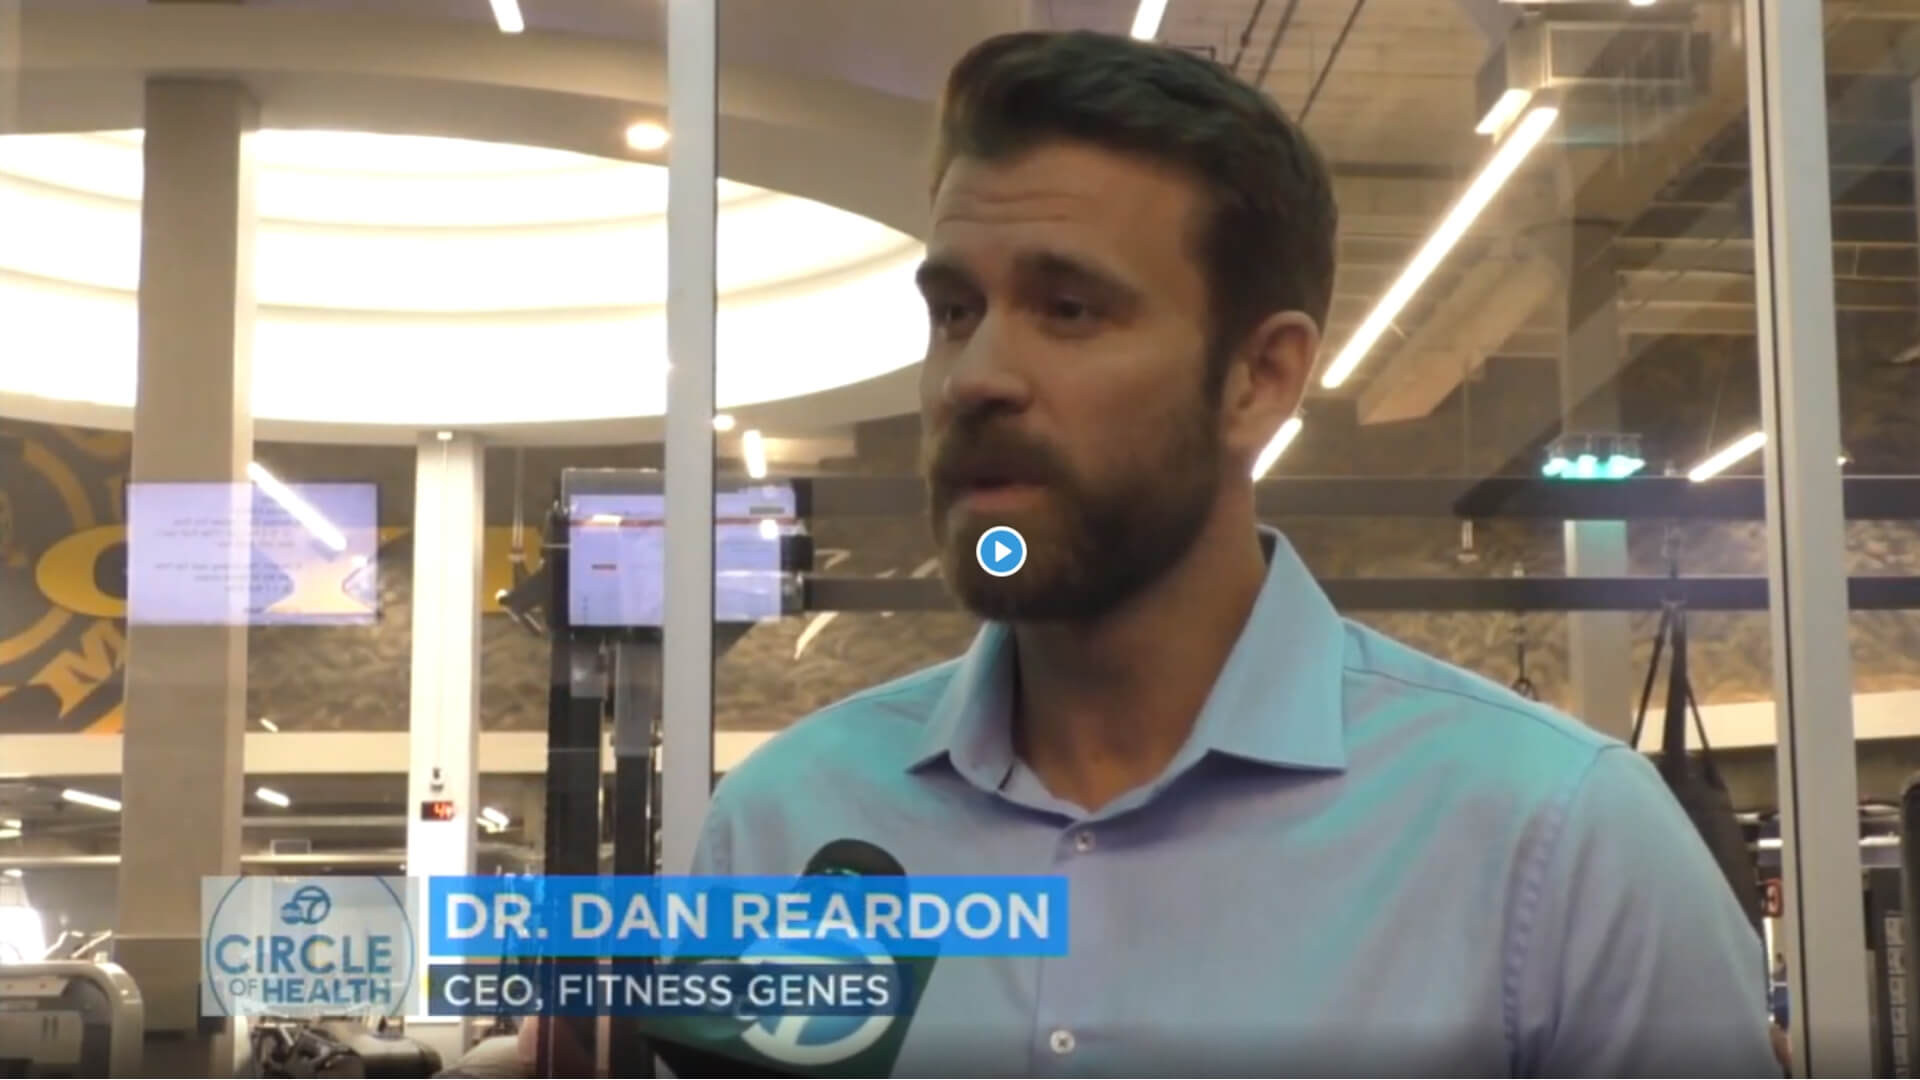 ABC News Channel 7: FitnessGenes testing offered by Gold's Gym